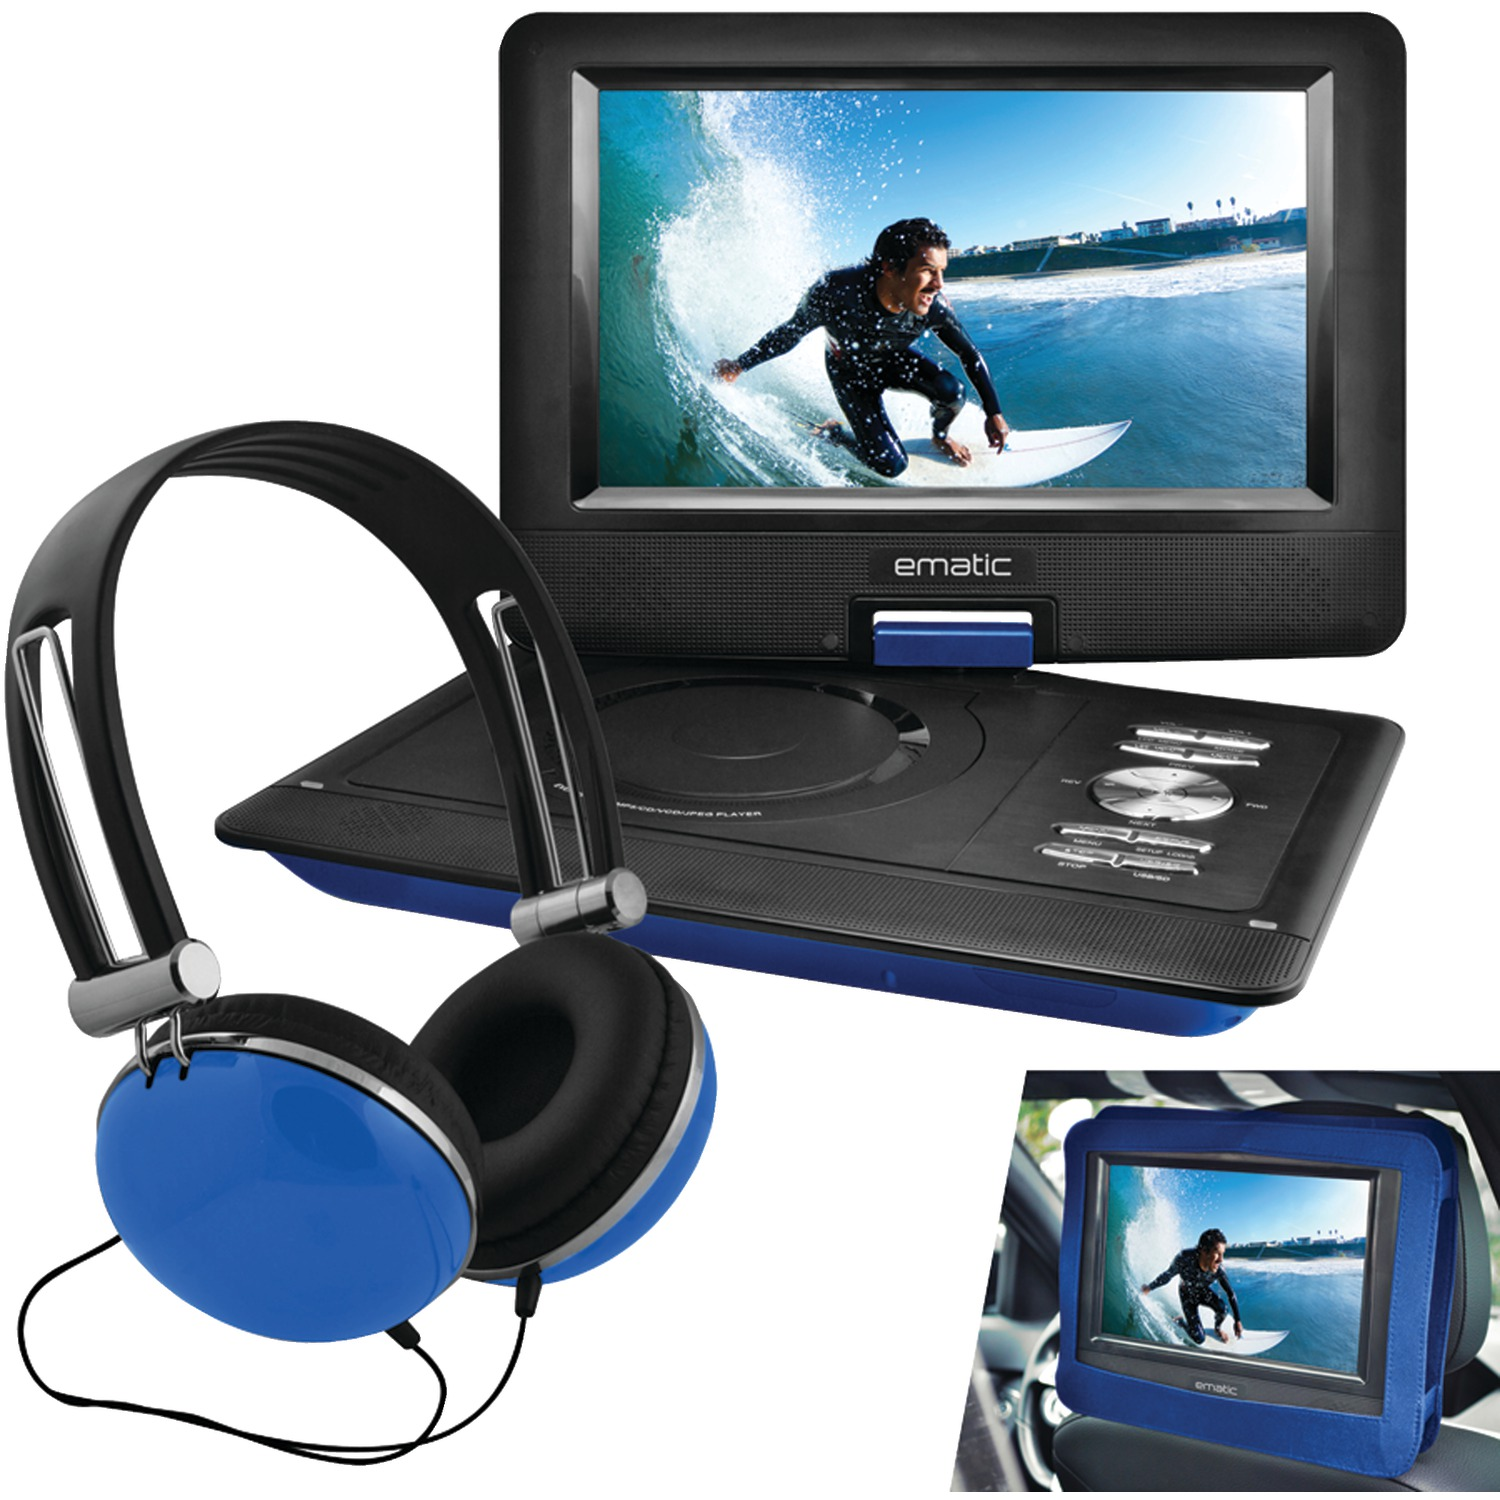 "Ematic EPD116BL 10"" Portable DVD Player with Headphones and Car-Headrest Mount - Black"